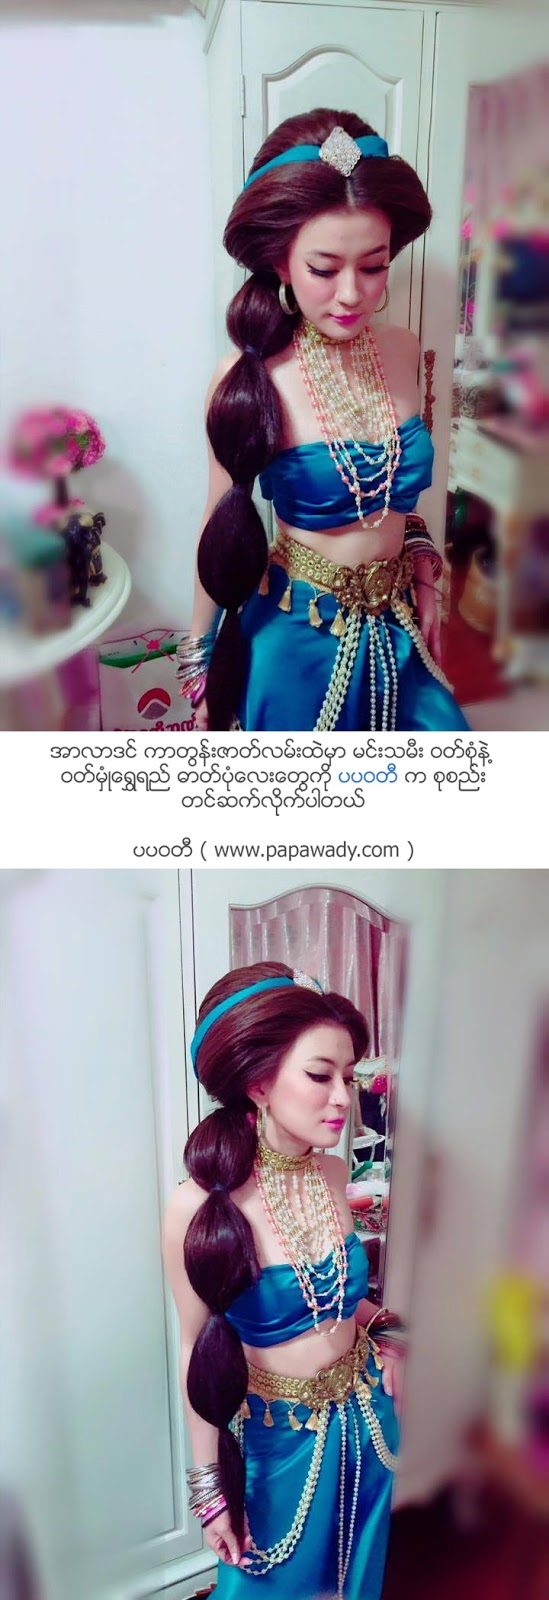 Wut Mhone Shwe Yi show off Aladin Princess Costume as Princess Jasmine